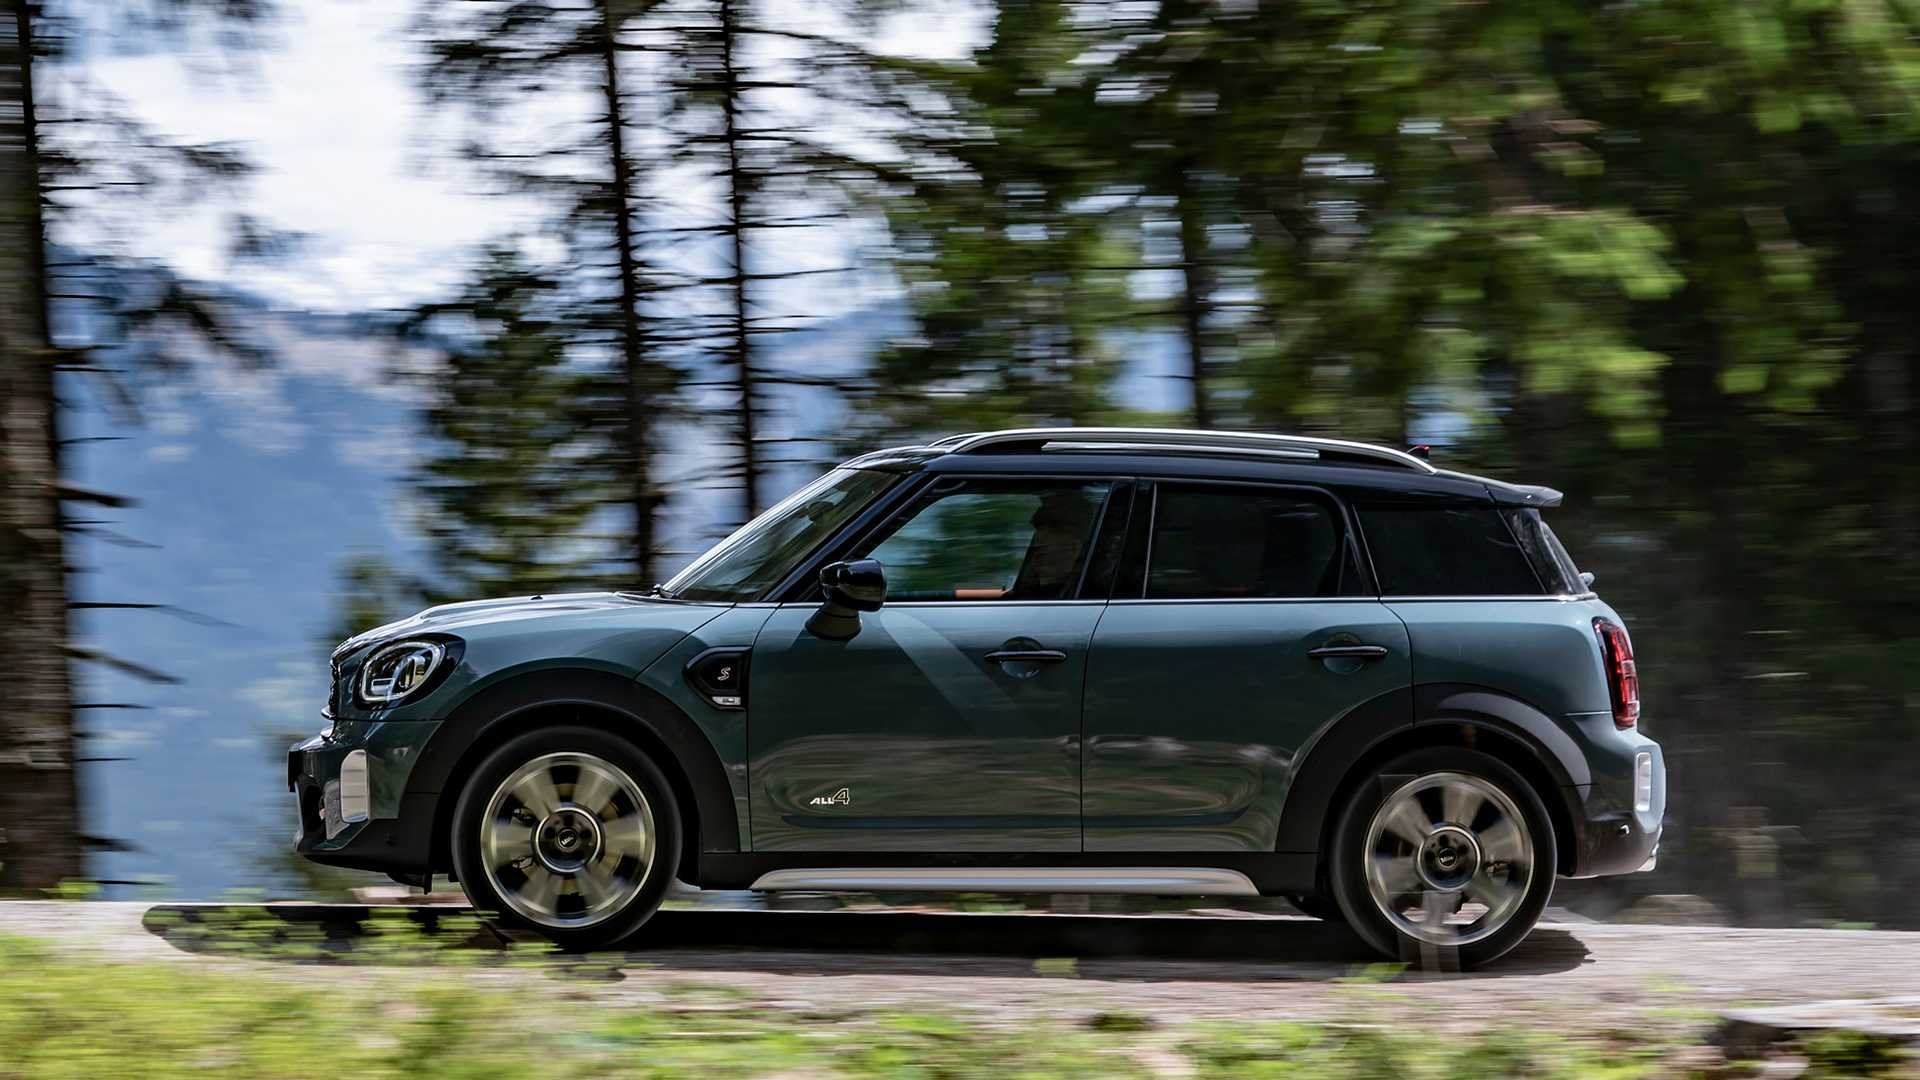 mini-cooper-s-countryman-all4-2020-1